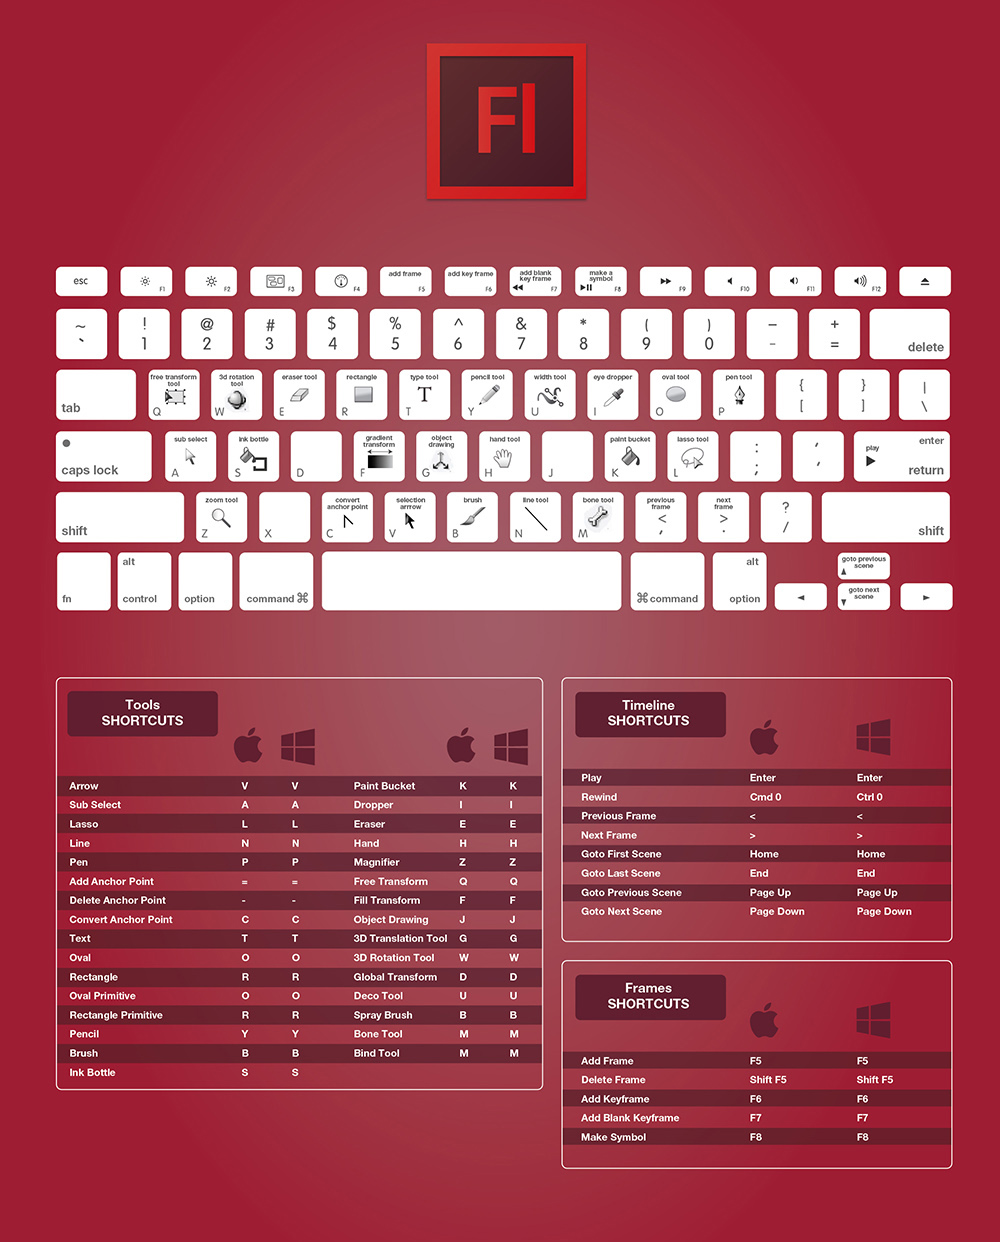 The Complete Adobe Flash CC Keyboard Shortcuts For Designers Guide 2015